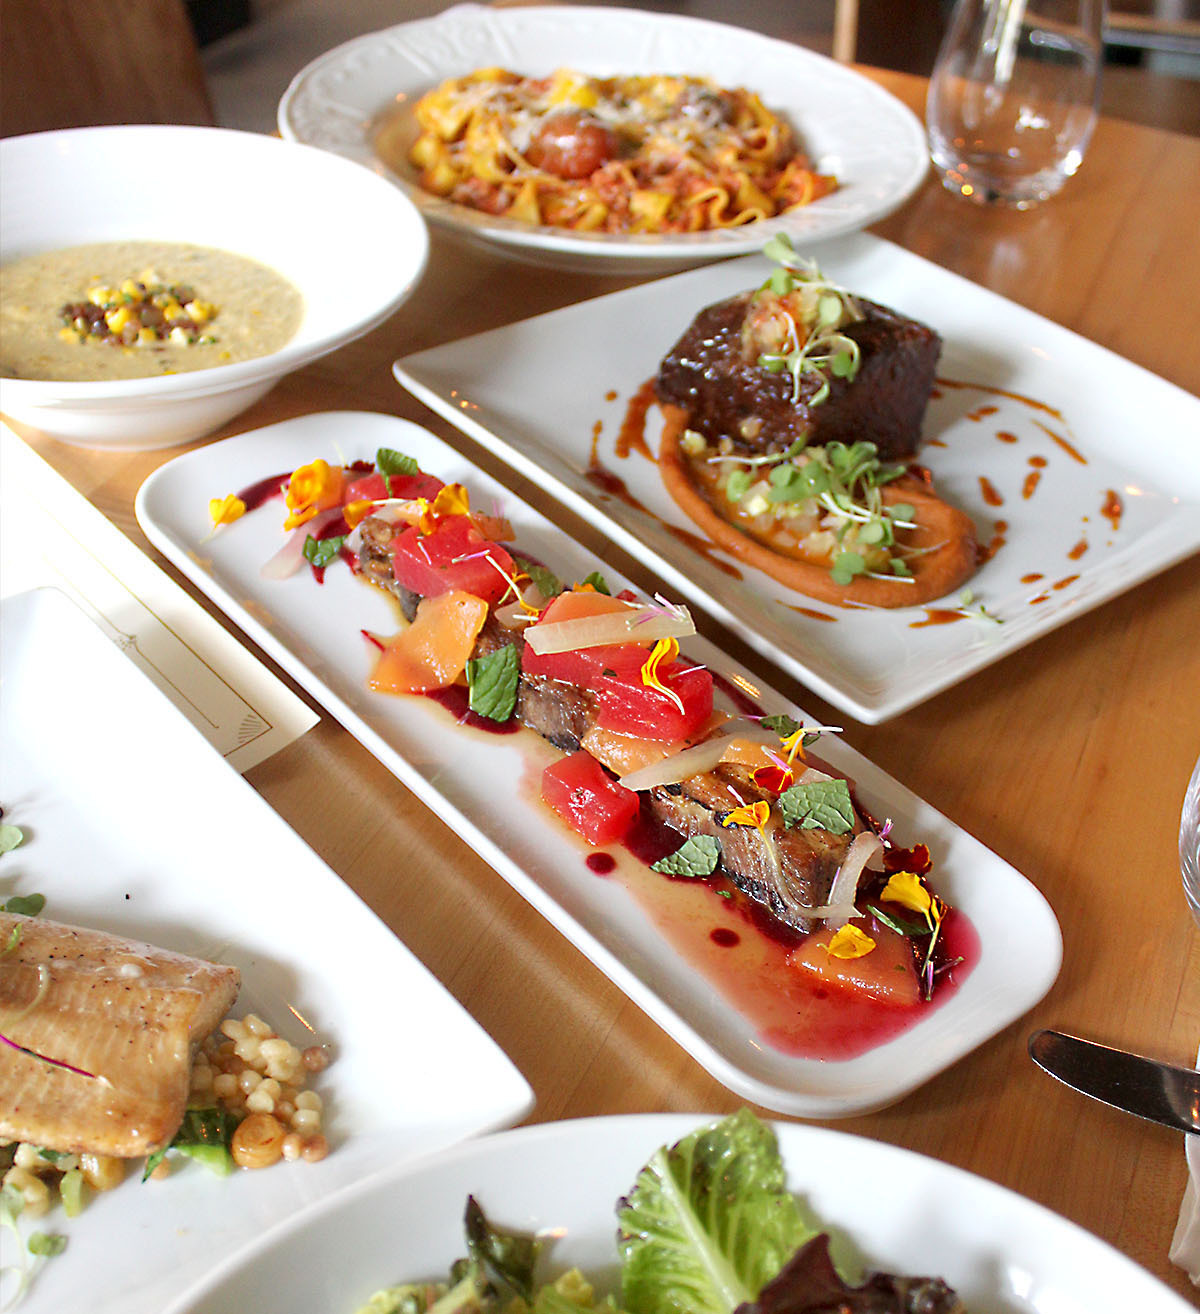 Plates of food on a table